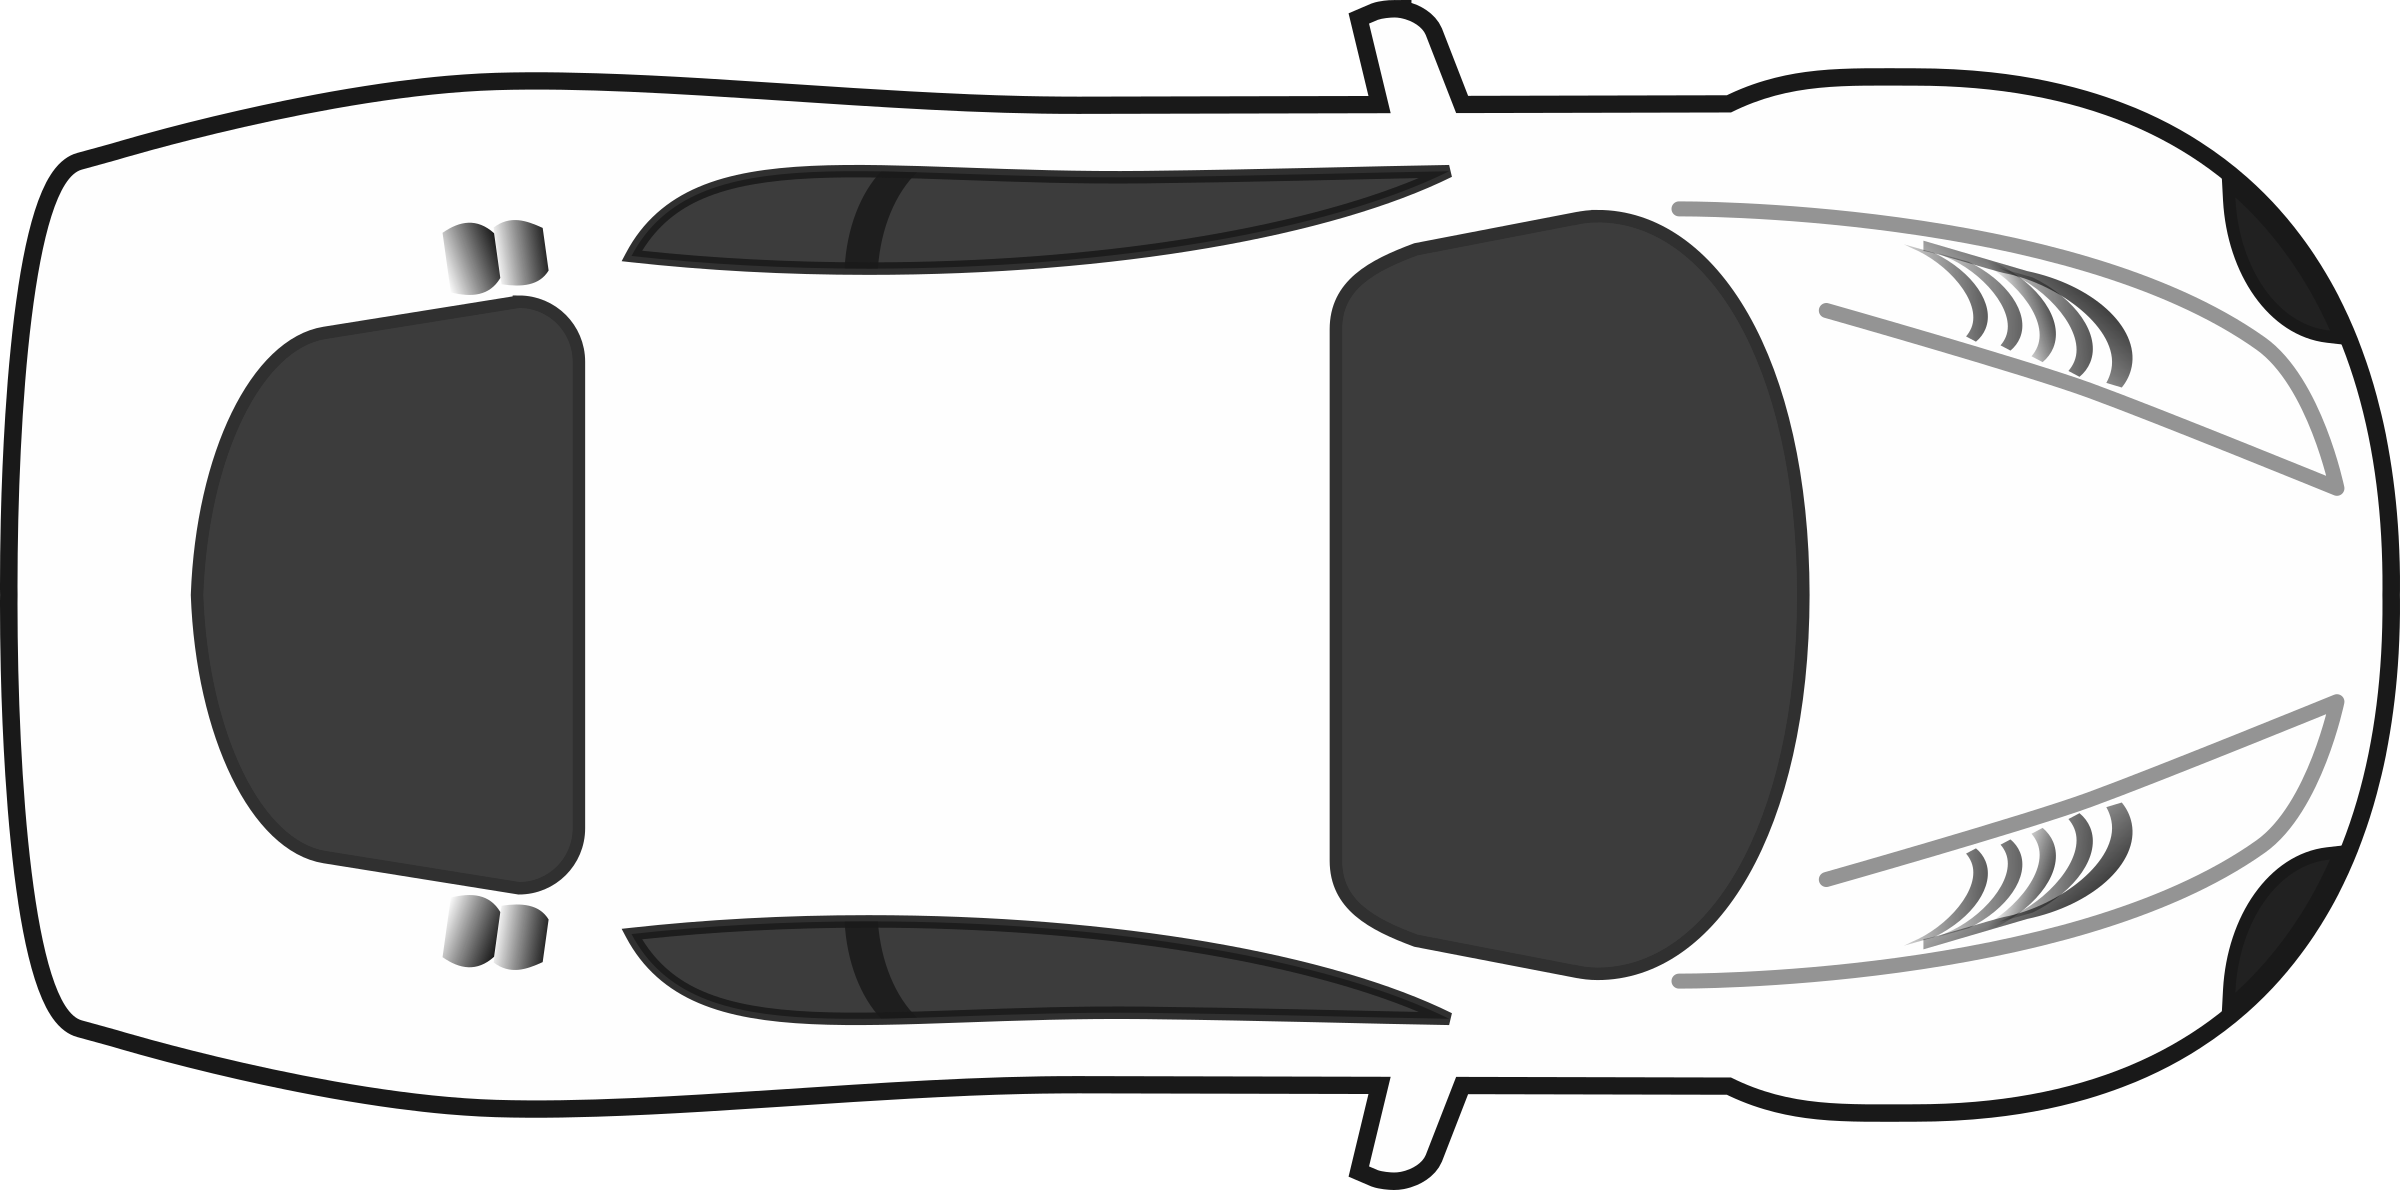 car black and. Vector race clipart graphic black and white stock